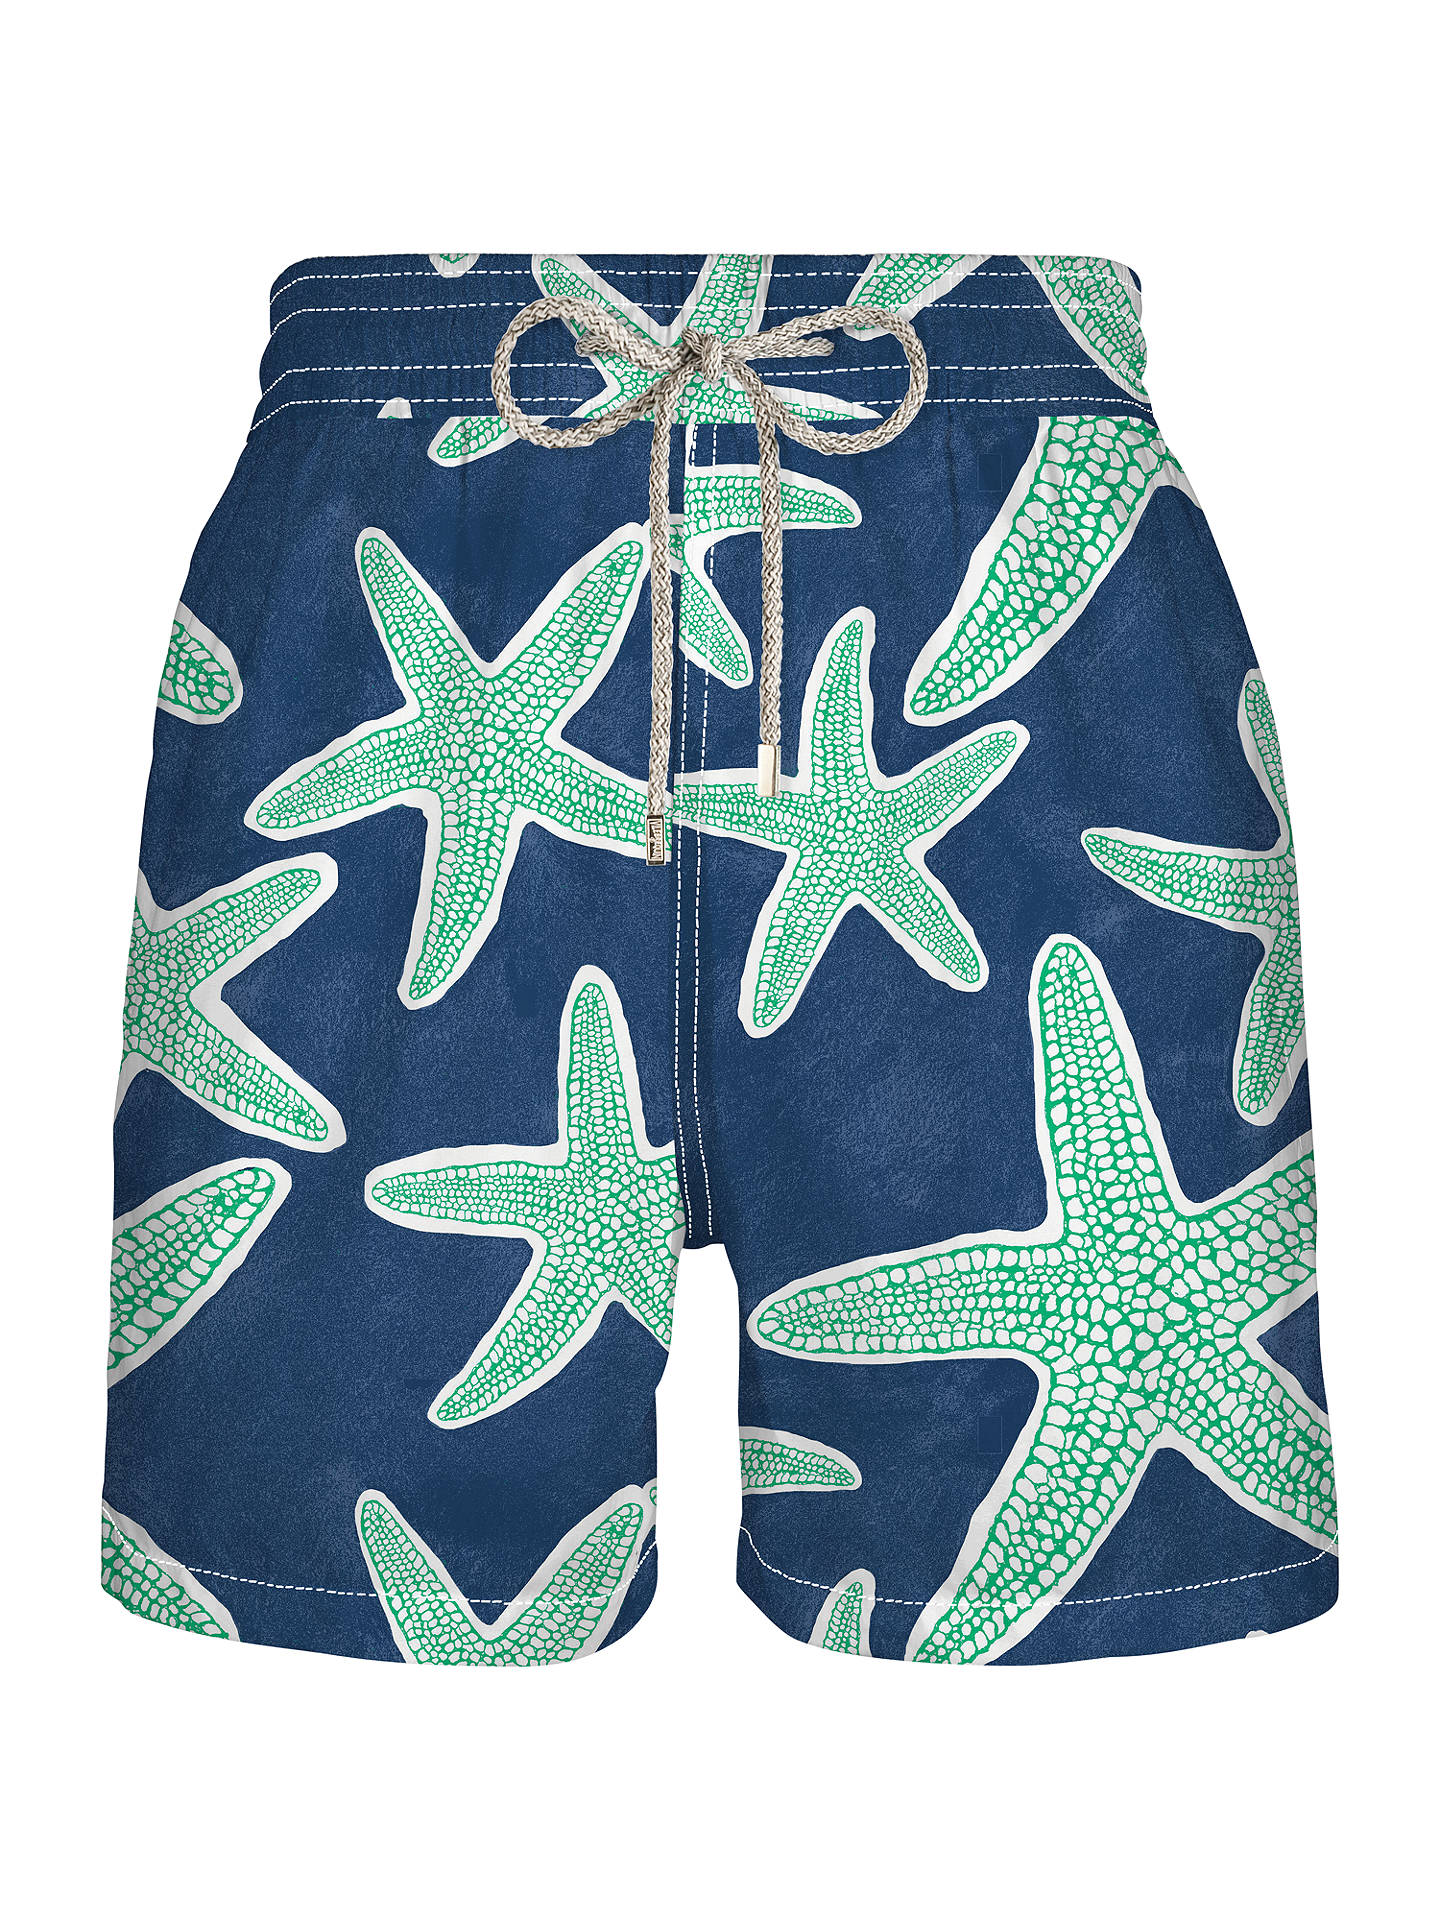 2d8f2897b6 Buy Vilebrequin Moorea Starfish Print Swim Shorts, Navy/Green, M Online at  johnlewis